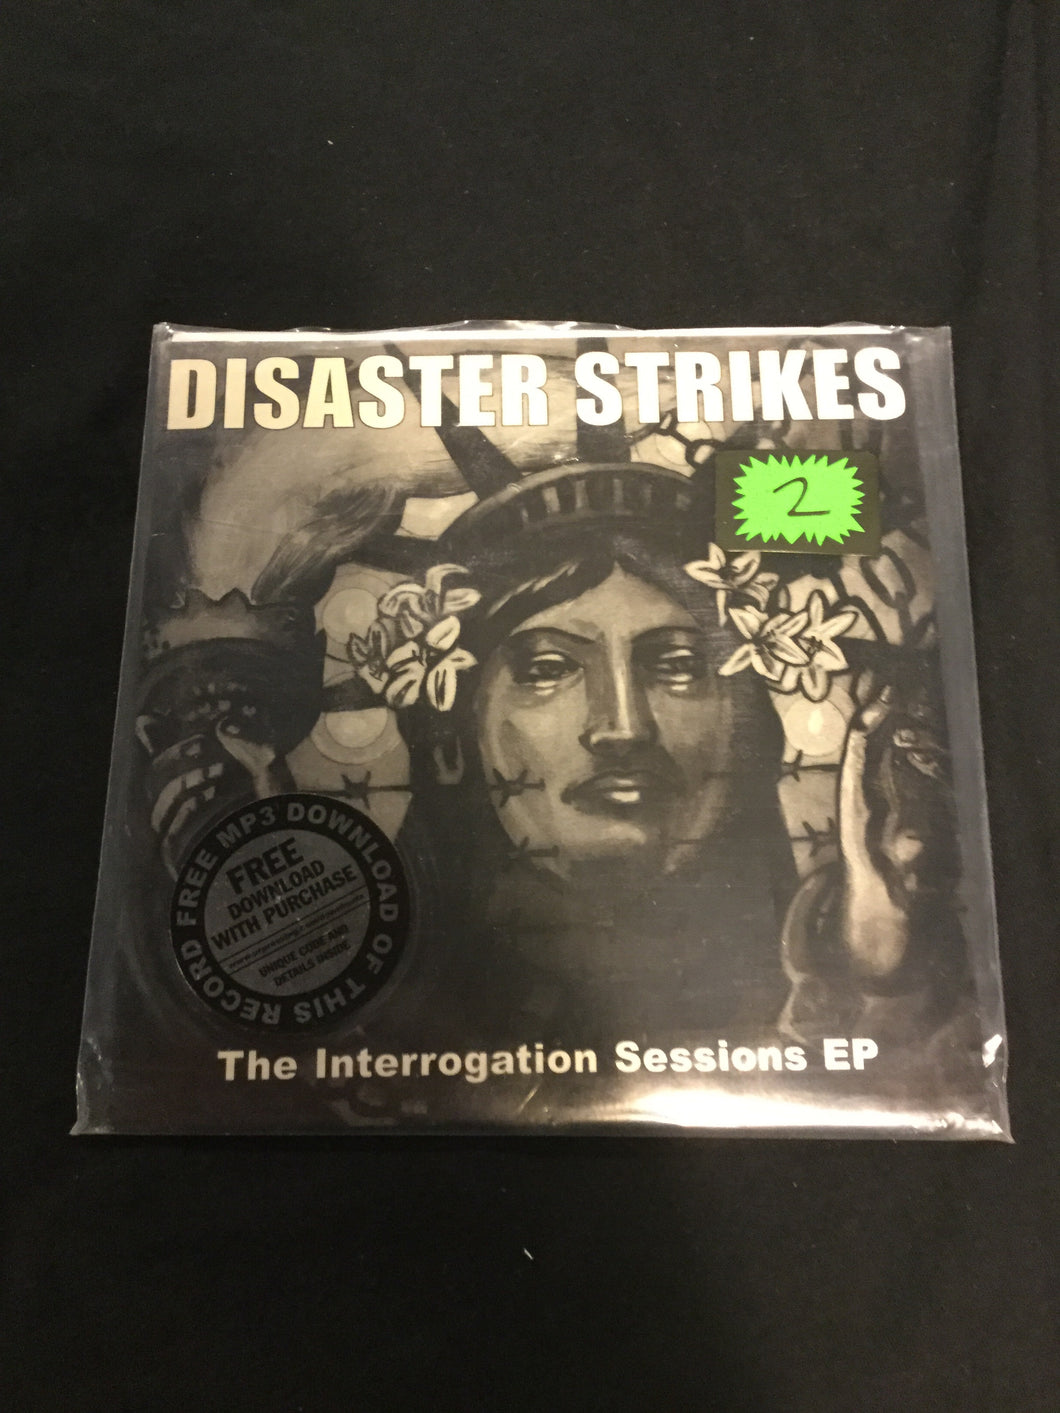 Disaster Strikes - The Interrogation Sessions 7 in